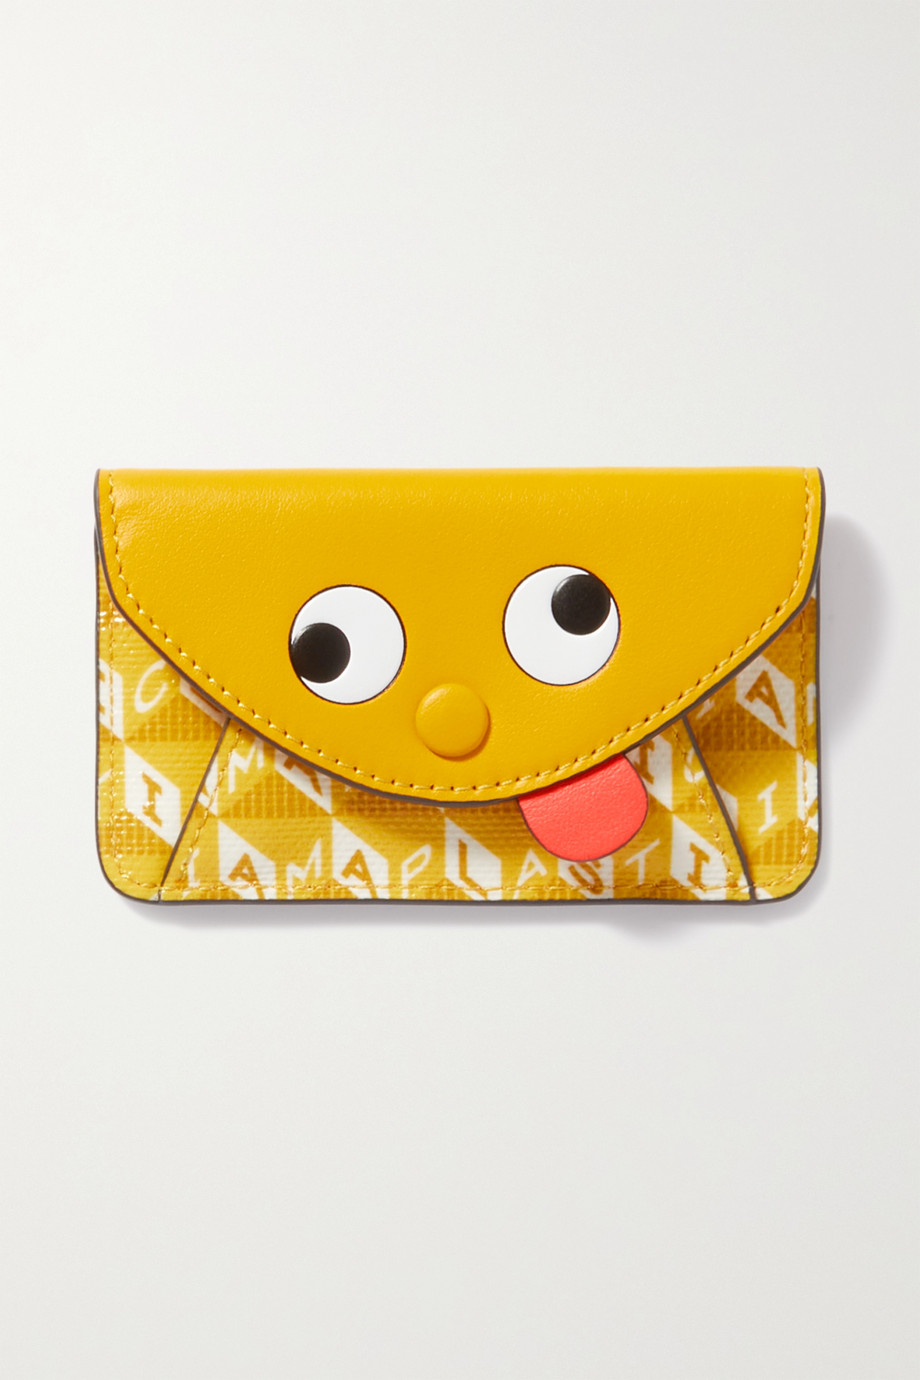 Anya Hindmarch I Am A Plastic Bag leather and and printed recycled coated-canvas cardholder